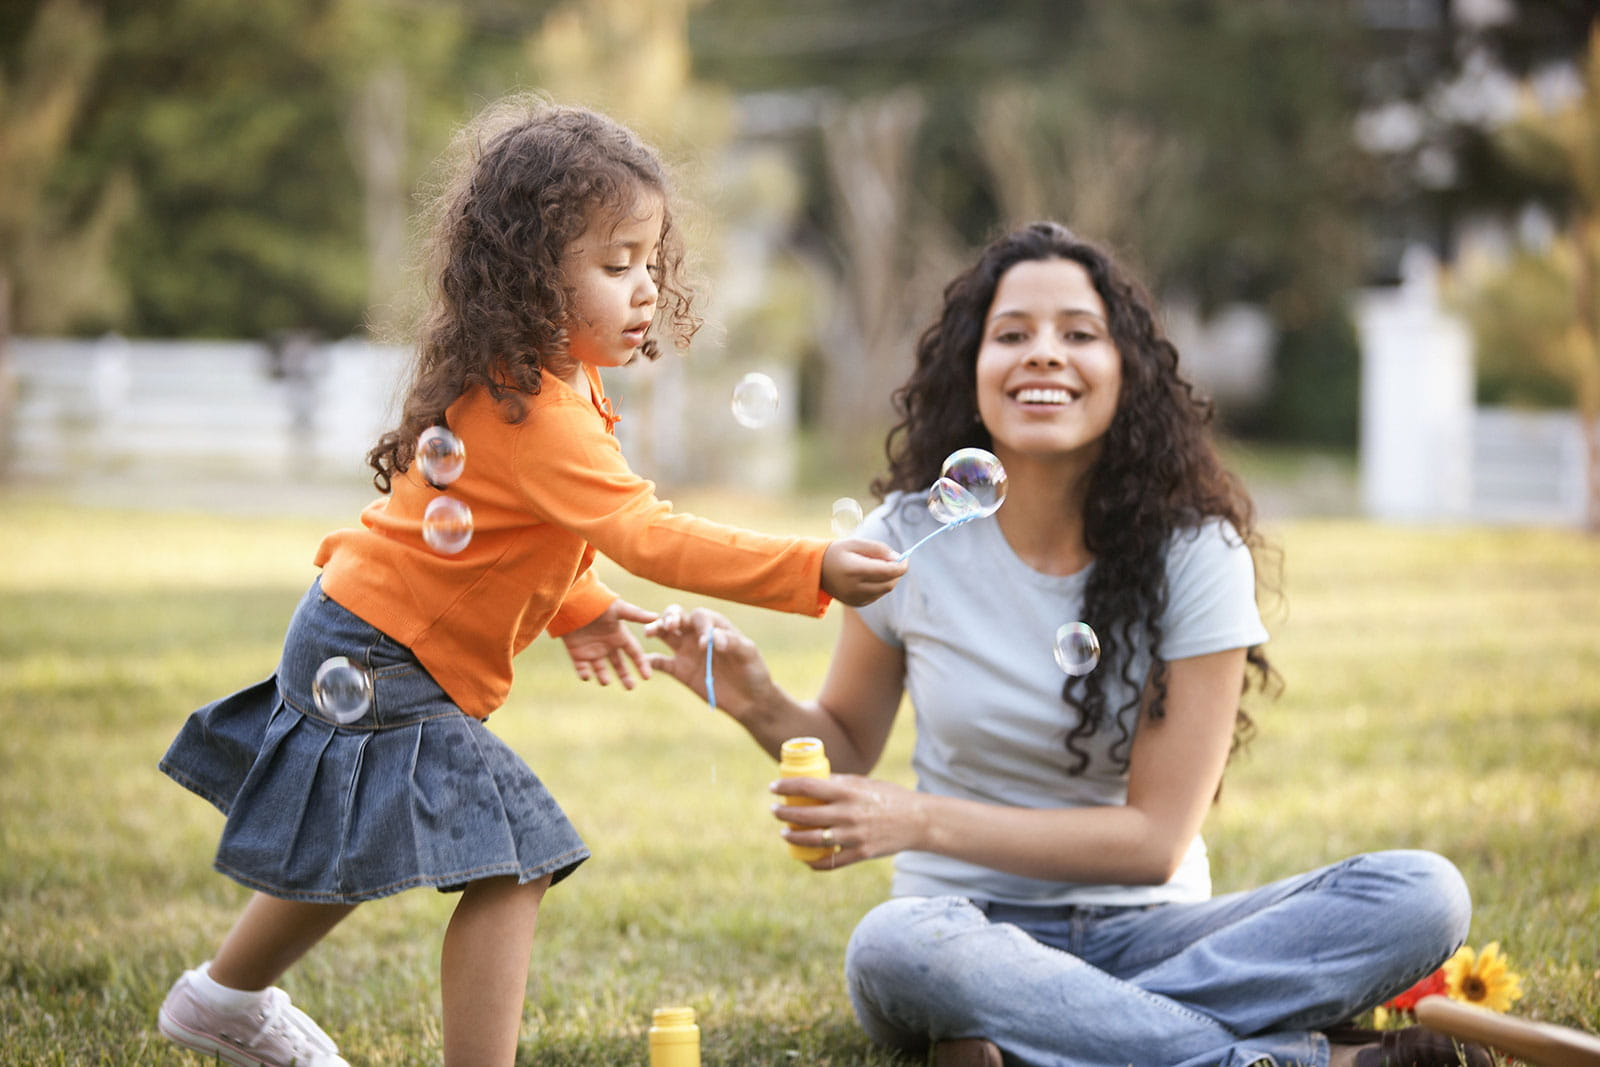 Female adult and child at a park